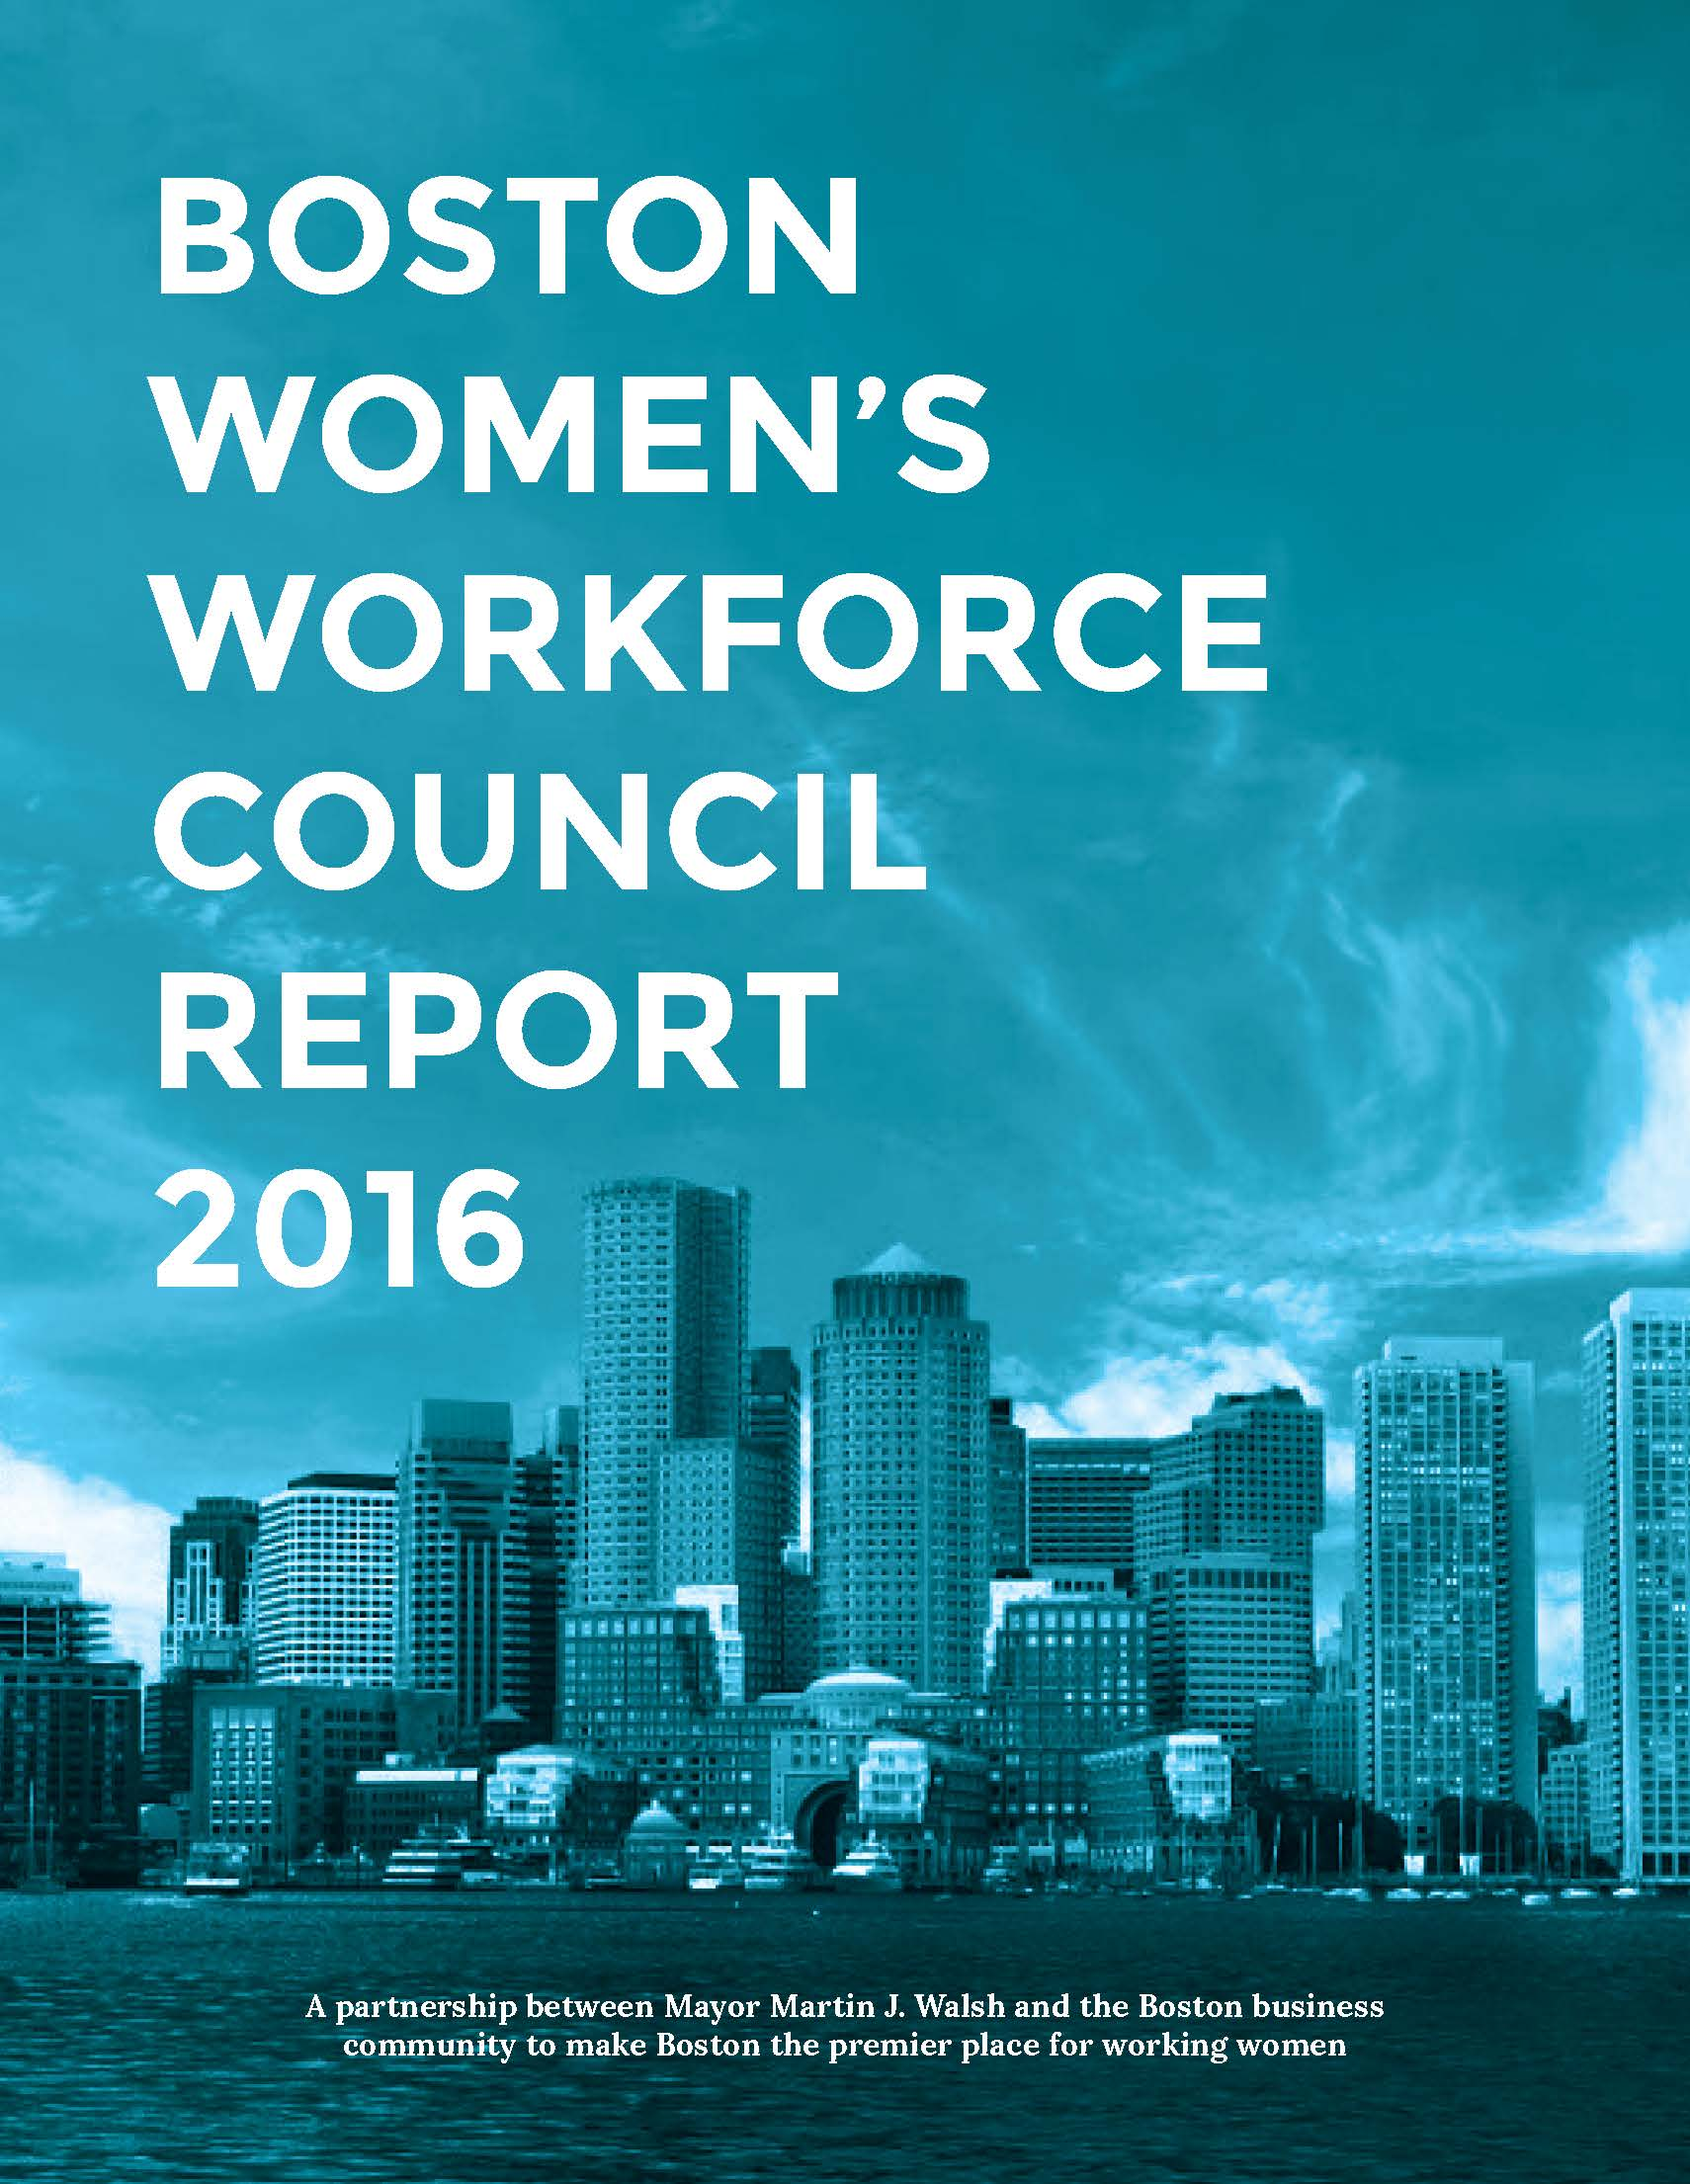 Boston Women's Workforce Council 2016 Report_Updated 2017_Page_01.jpg